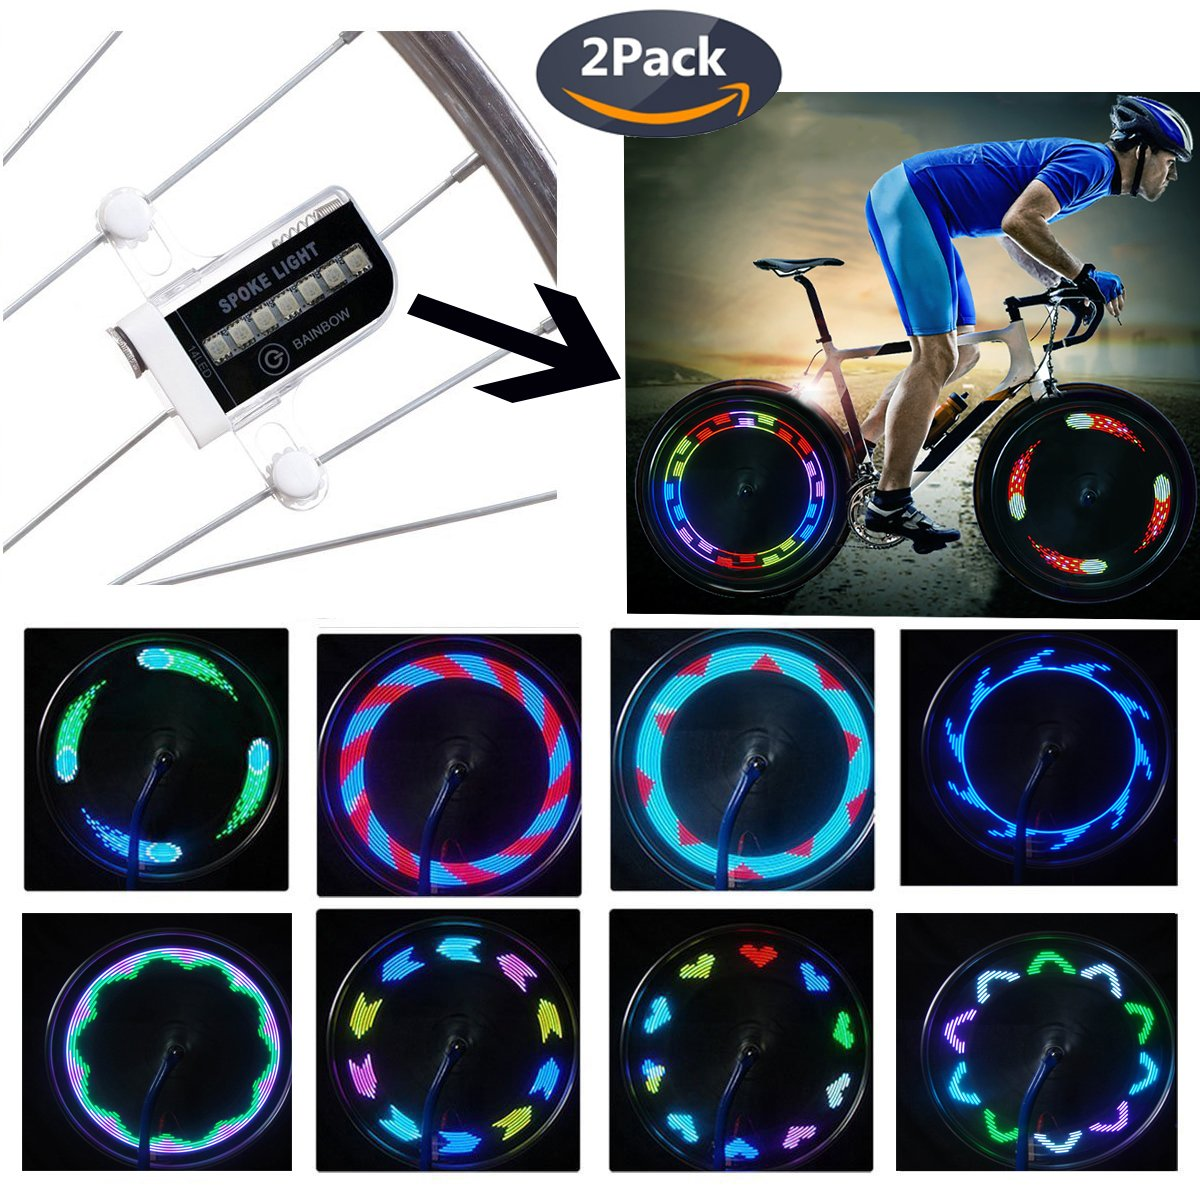 QANGEL Bike Wheel Lights,Waterproof Bike Spoke Lights Ultra Bright 14 LED Bicycle Wheel Lights,Safety Cool RGB Bike Tire Light for Kids Adults,30 Patterns Changes, Auto & Manual Dual Switch (2 Pack) by QANGEL (Image #1)